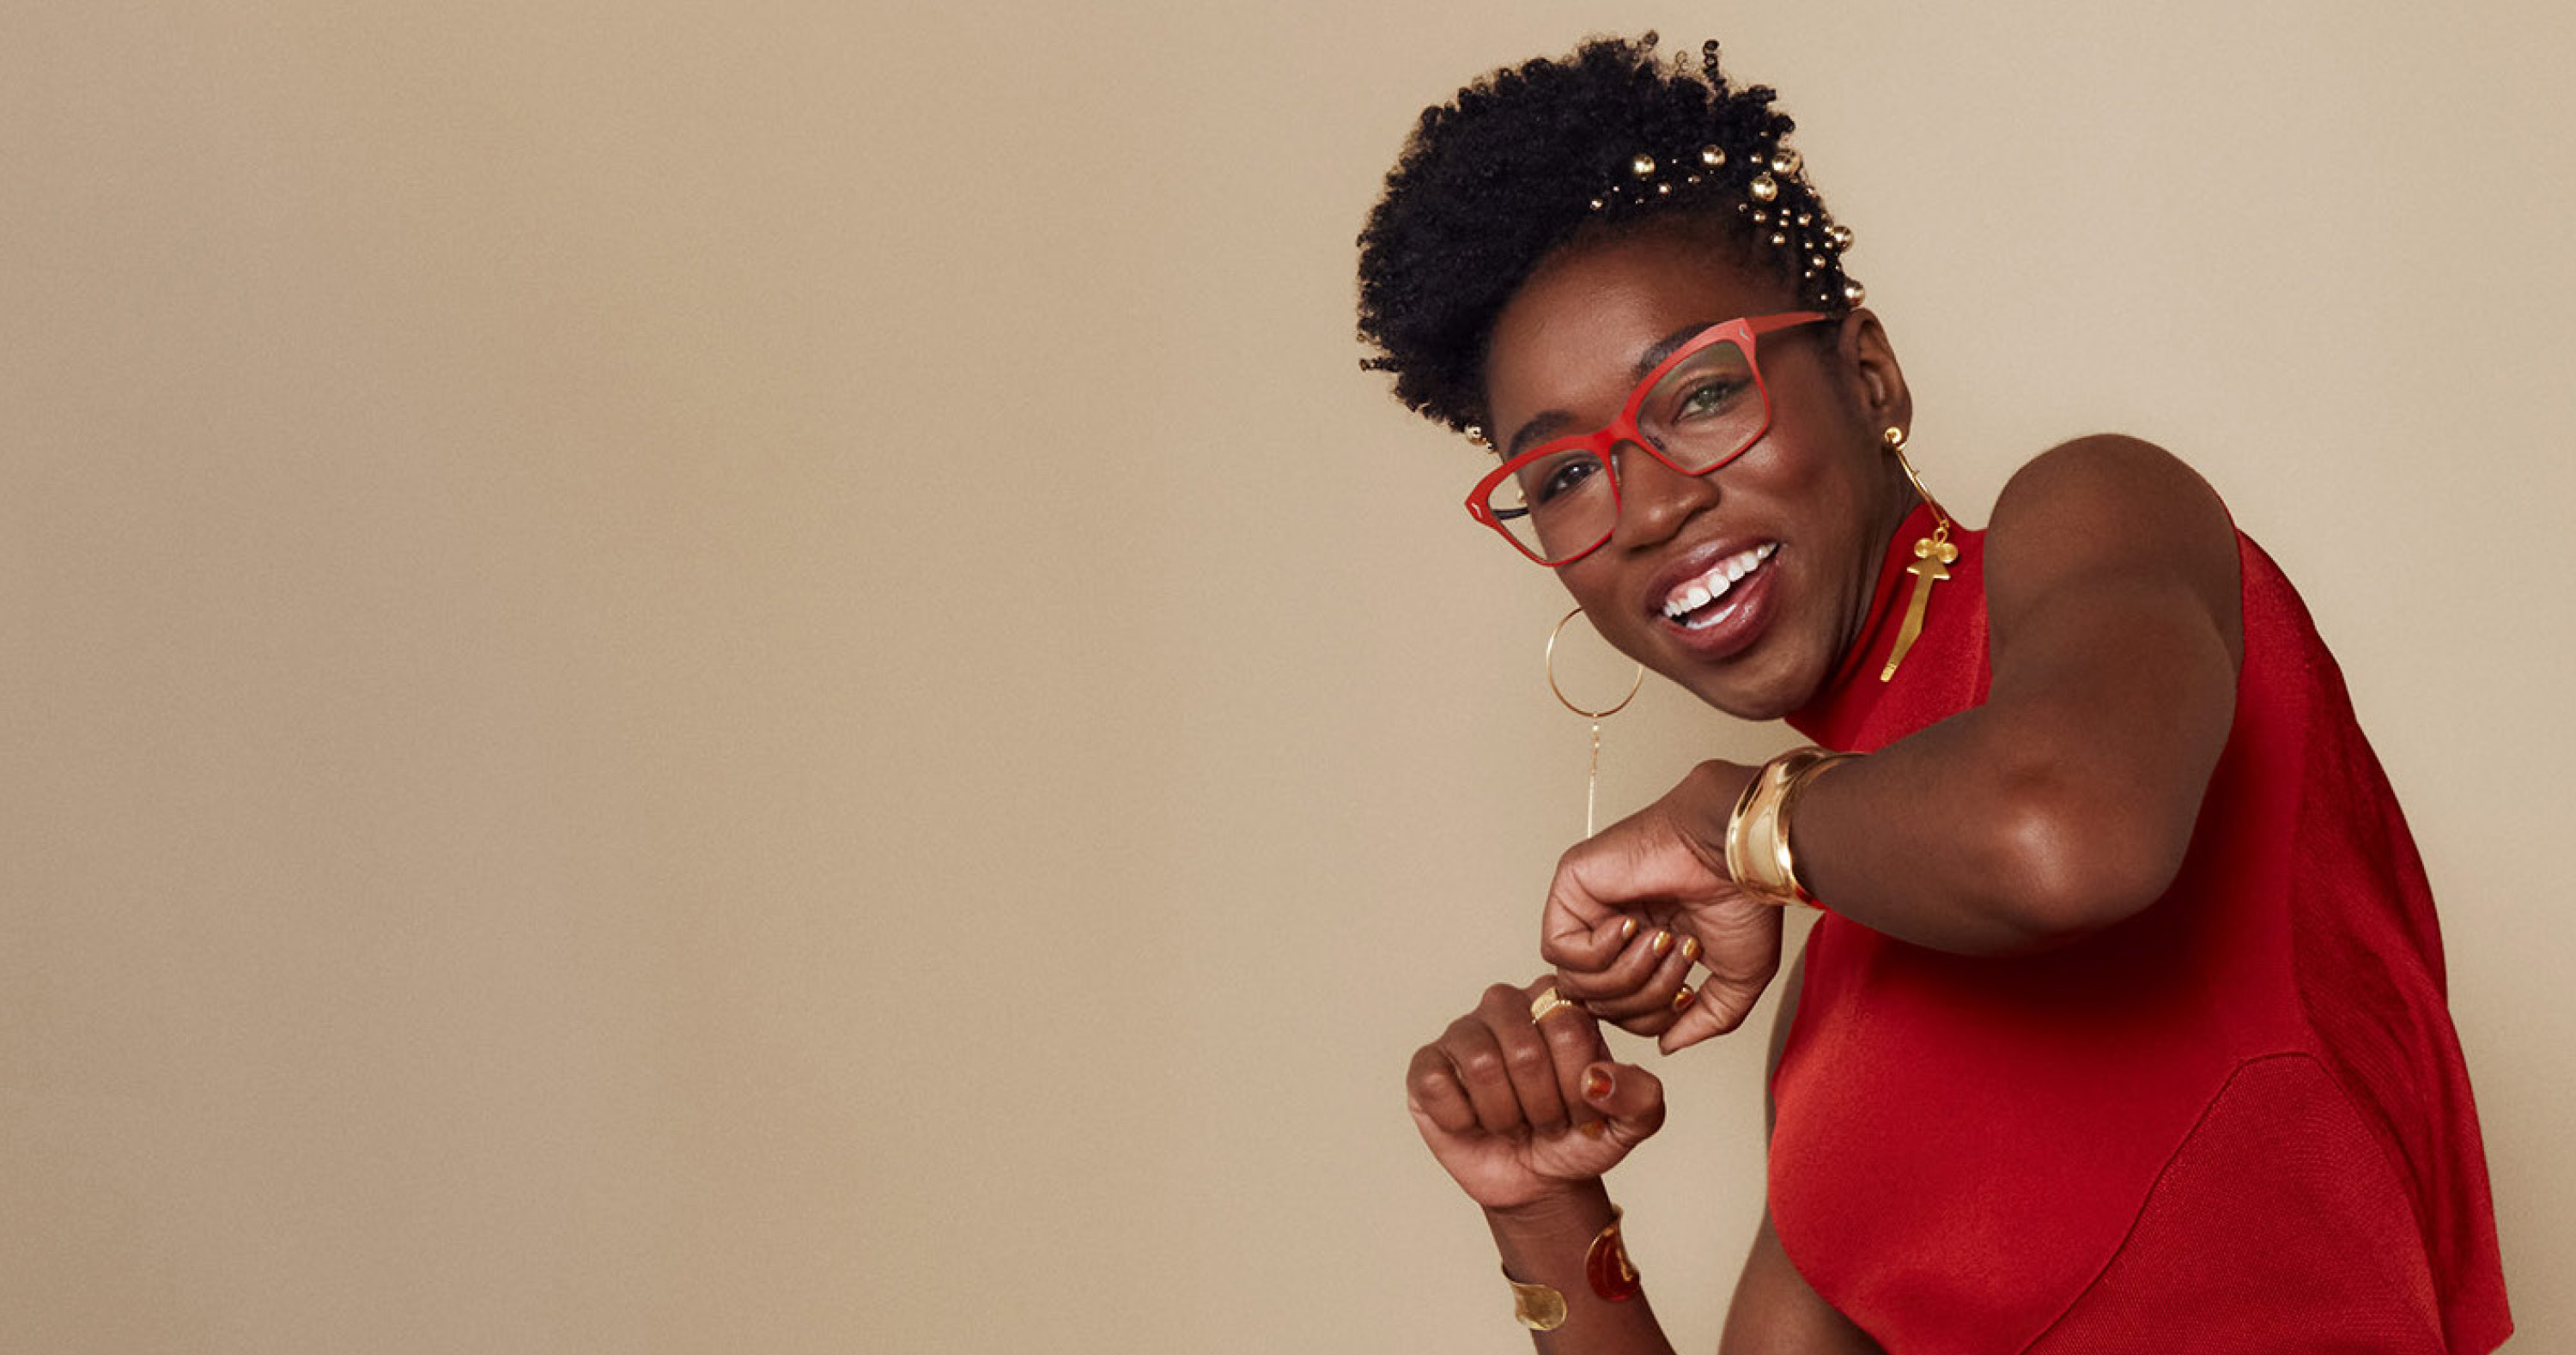 Joy Buolamwini in a red dress smiles and makes a punching motion.